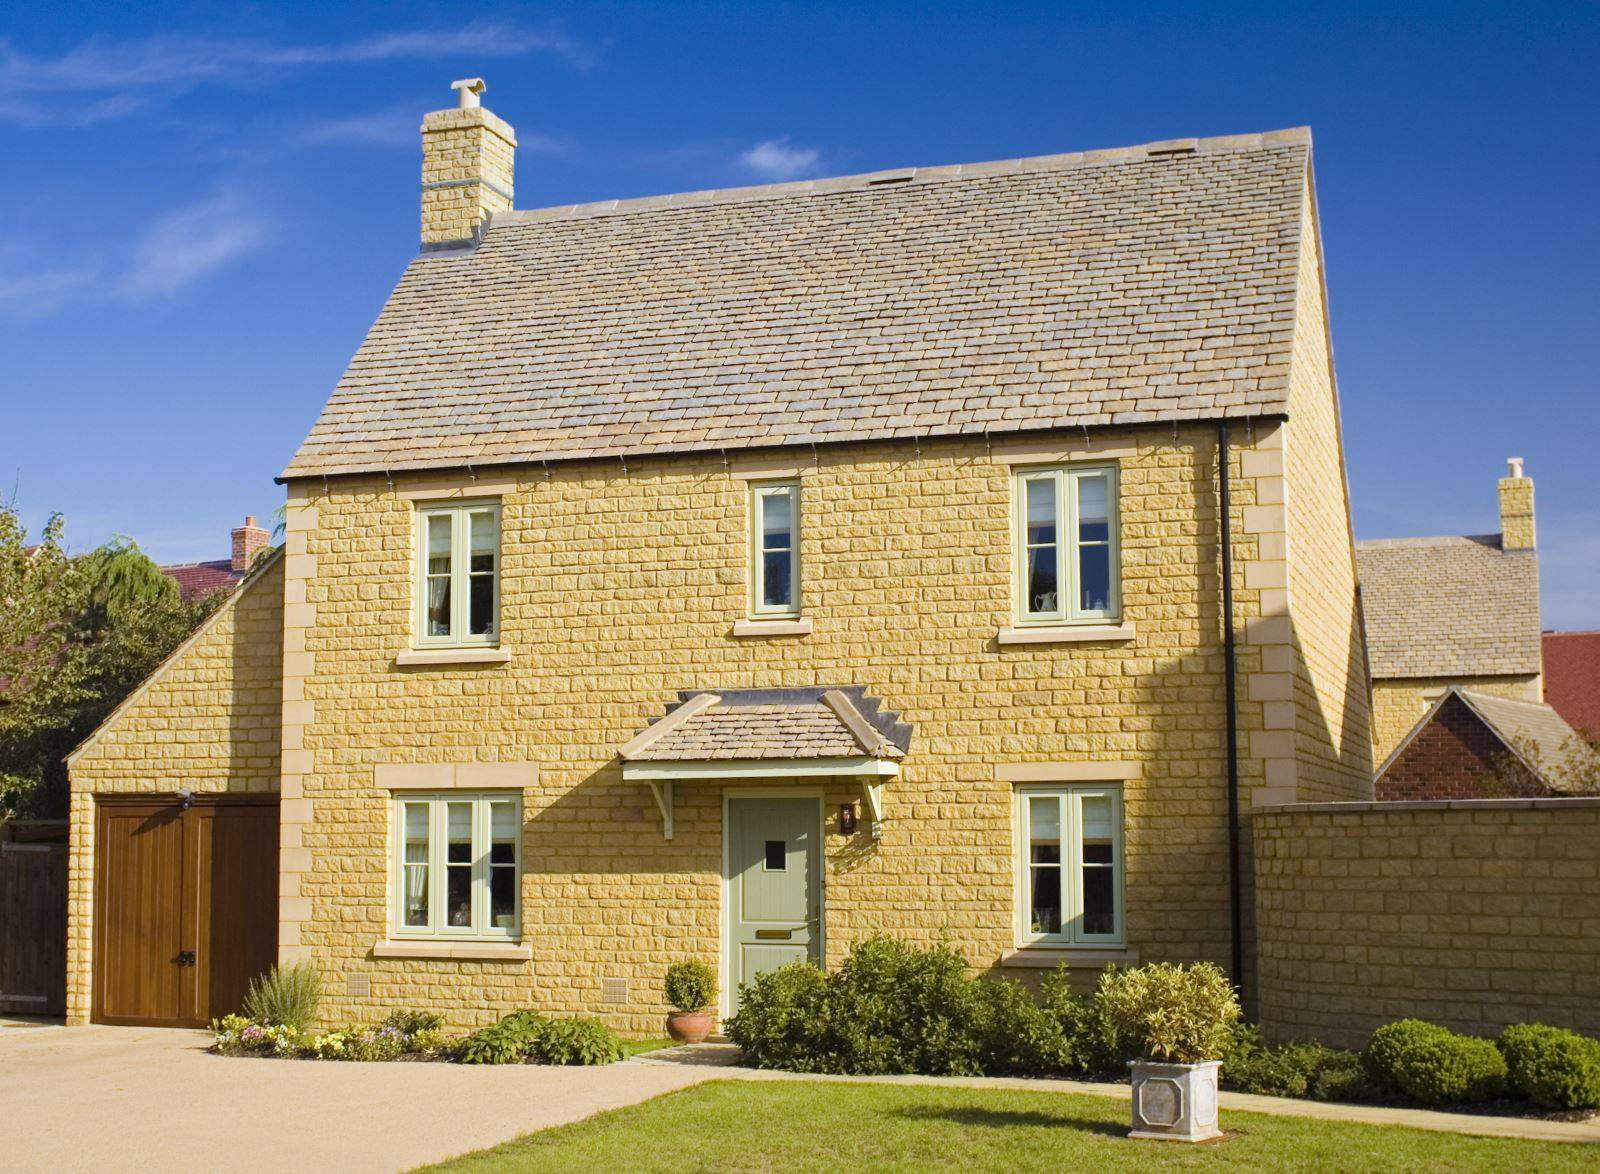 large yellow brick house with slate roof